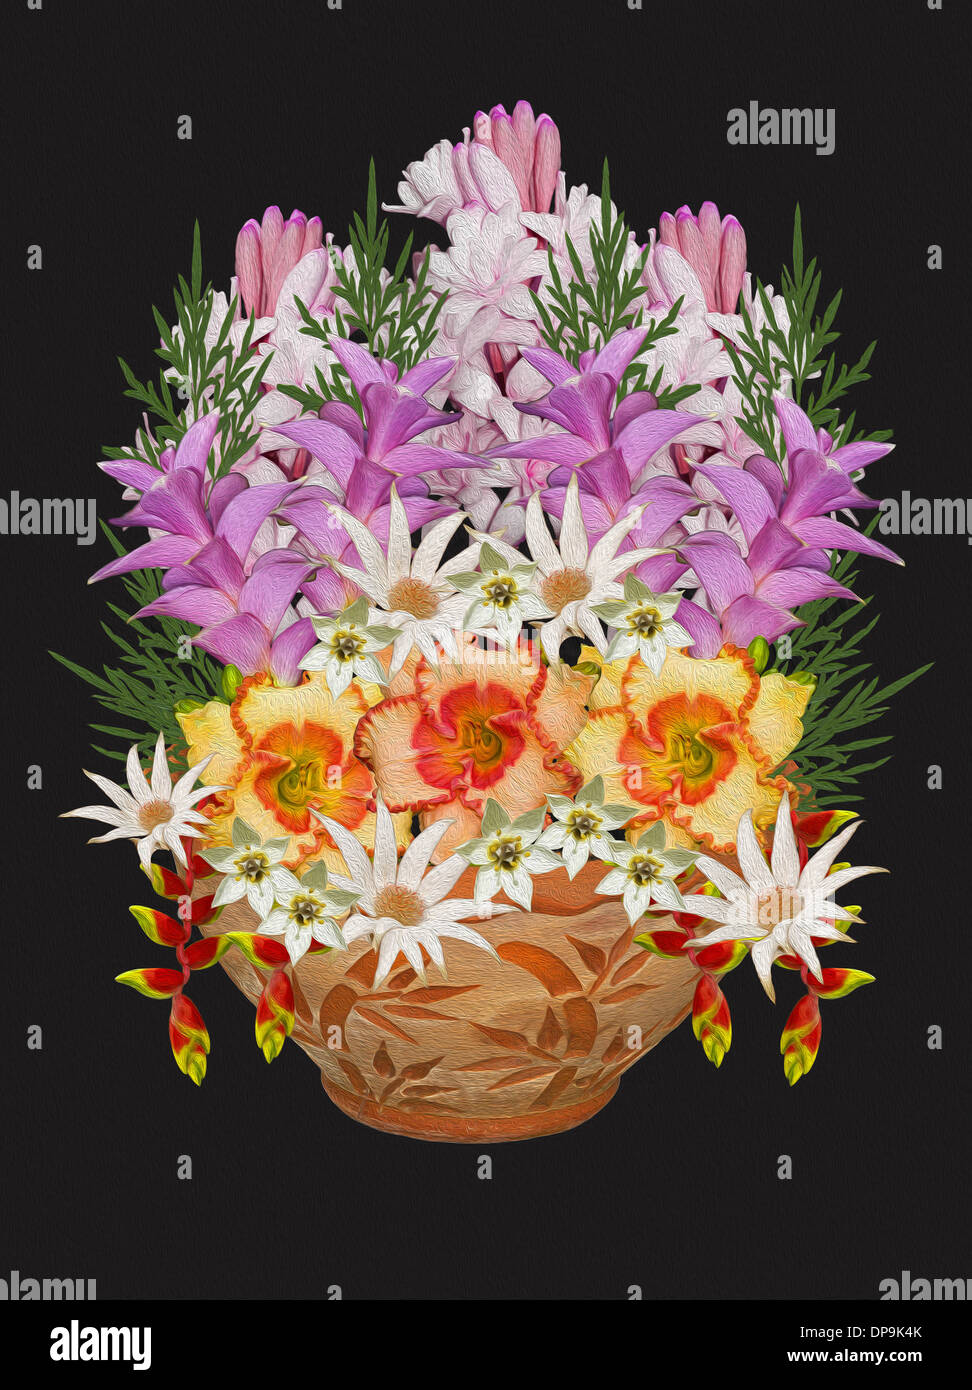 Flower pot collage stock photos flower pot collage stock images spectacular floral art with bouquet of mauve white pink and apricot spring flowers in izmirmasajfo